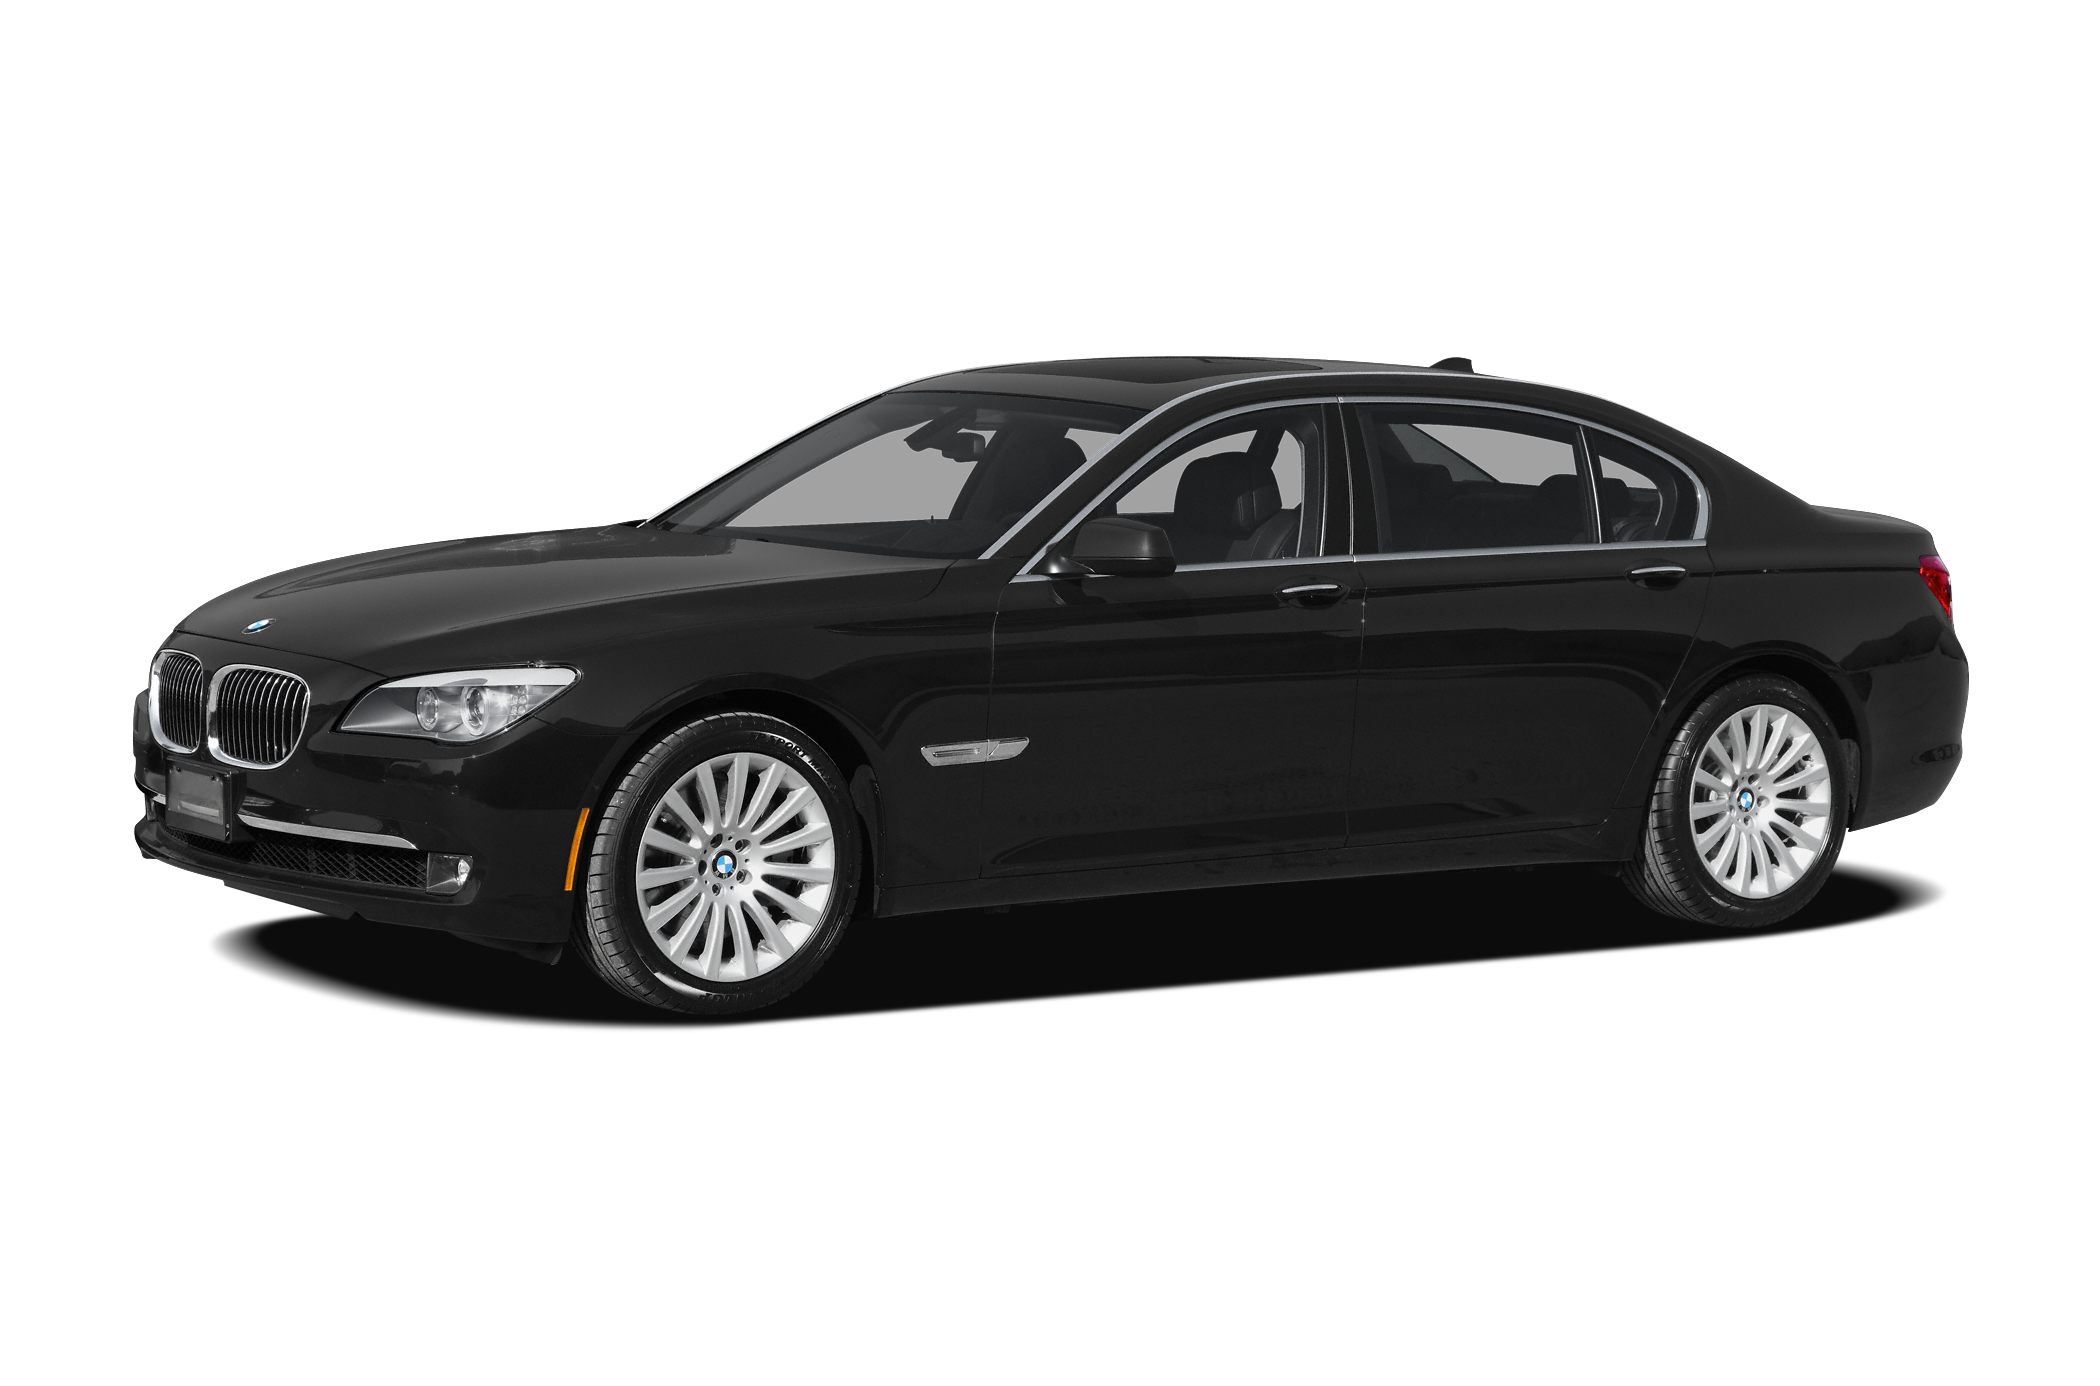 2011 BMW 750 Li Sedan for sale in Fullerton for $34,499 with 66,771 miles